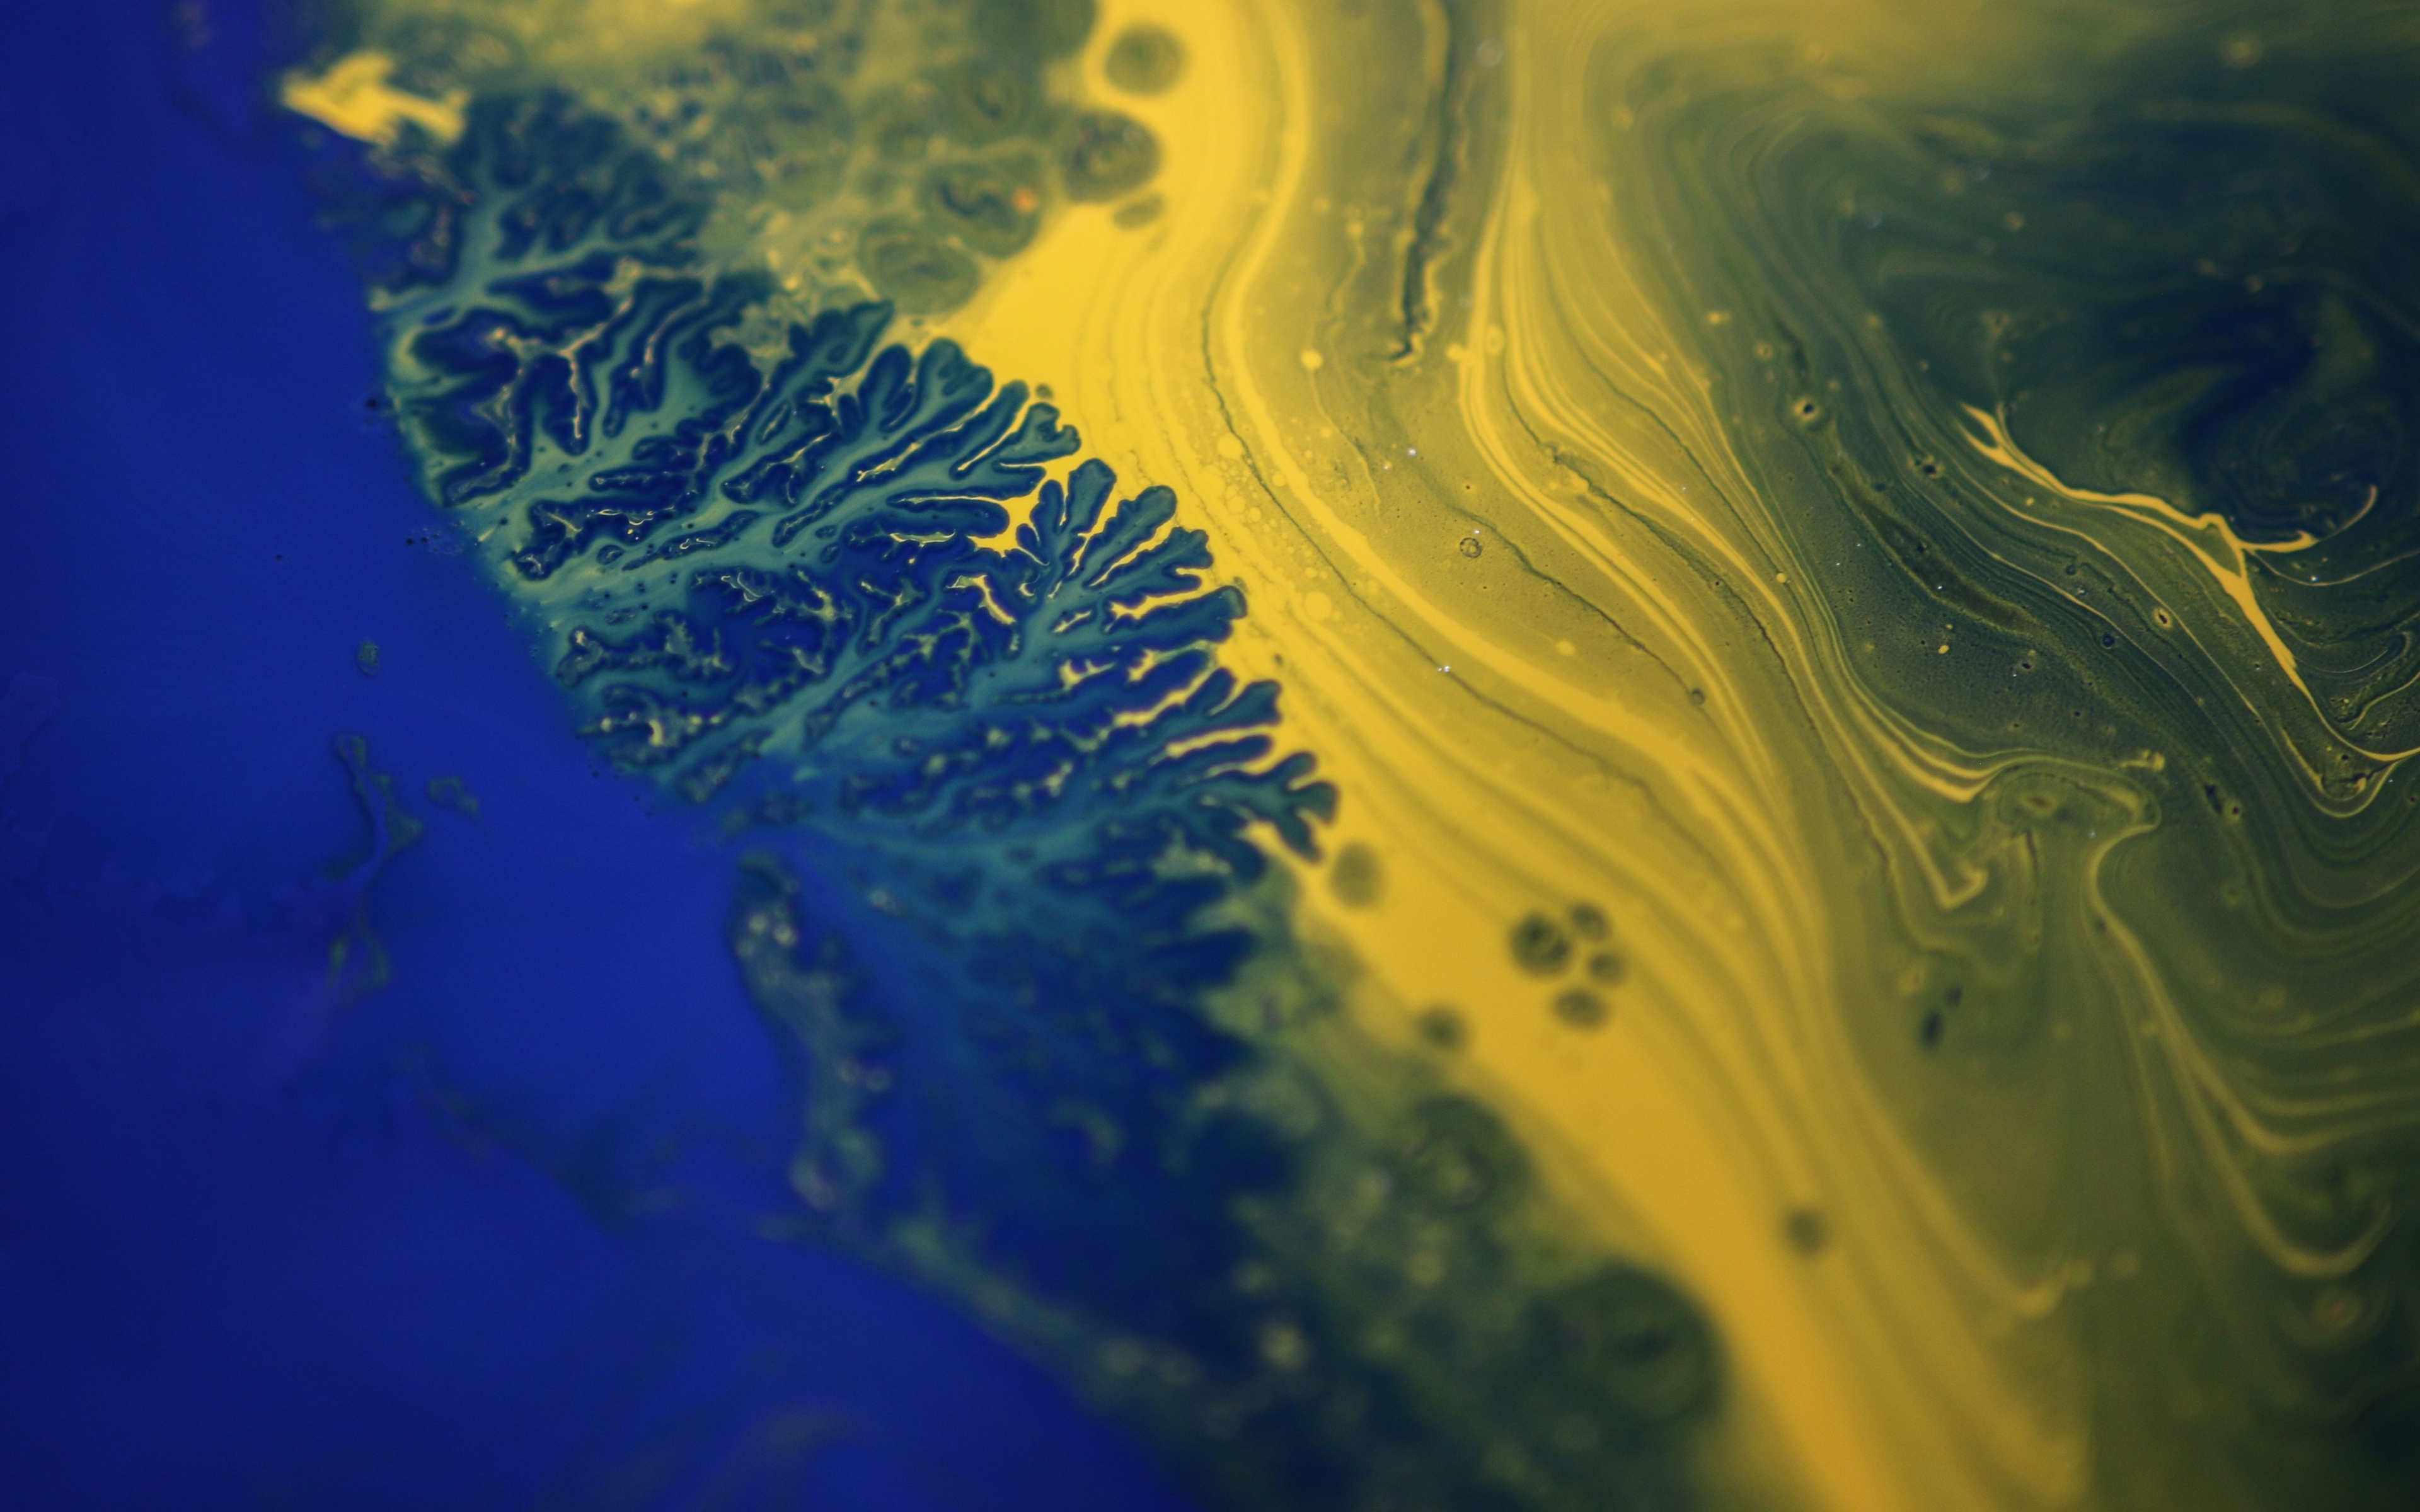 Download 3840x2400 Wallpaper Digital Paint Fractal Yellow Blue Abstract 4k Ultra Hd 16 10 Widescreen 3840x2400 Hd Image Background 4994